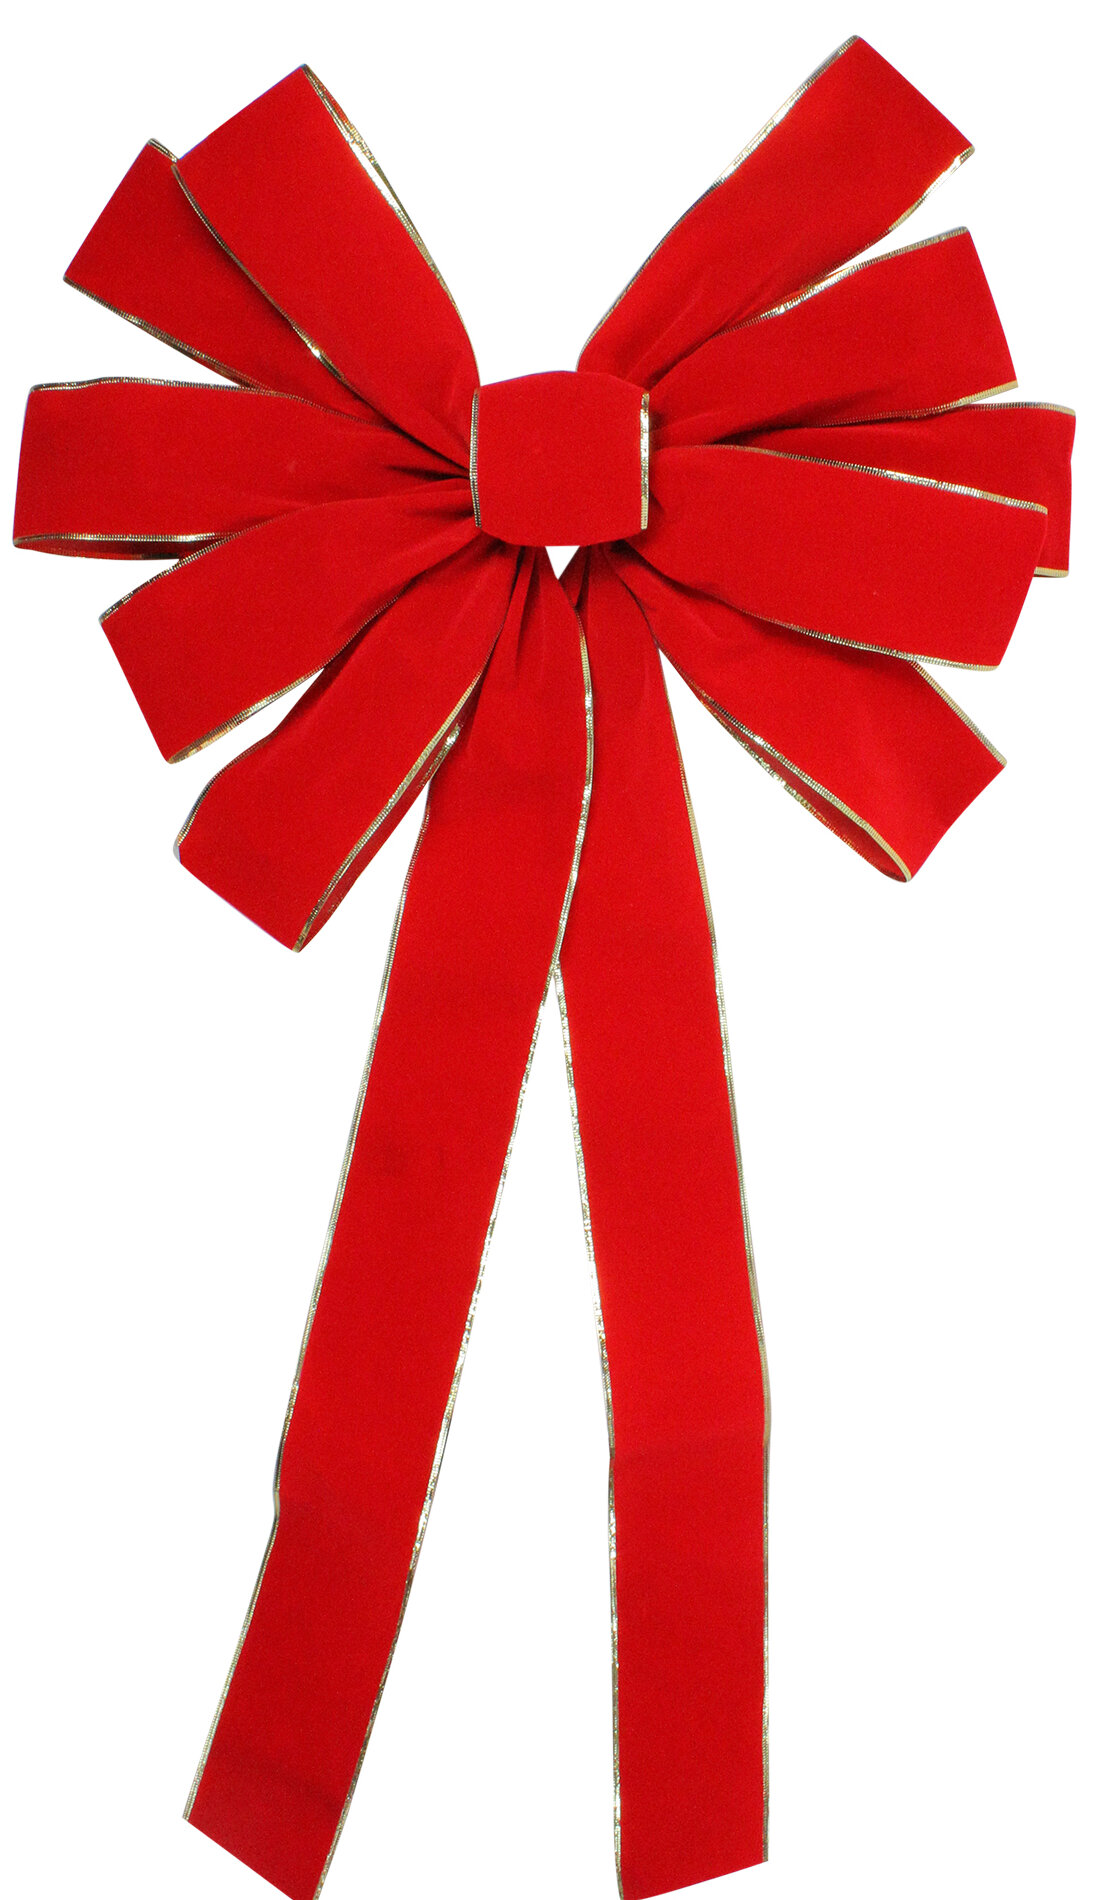 Northlight 24 X 42 Large Red 11 Loop Velveteen Christmas Bow With Gold Trim Wayfair